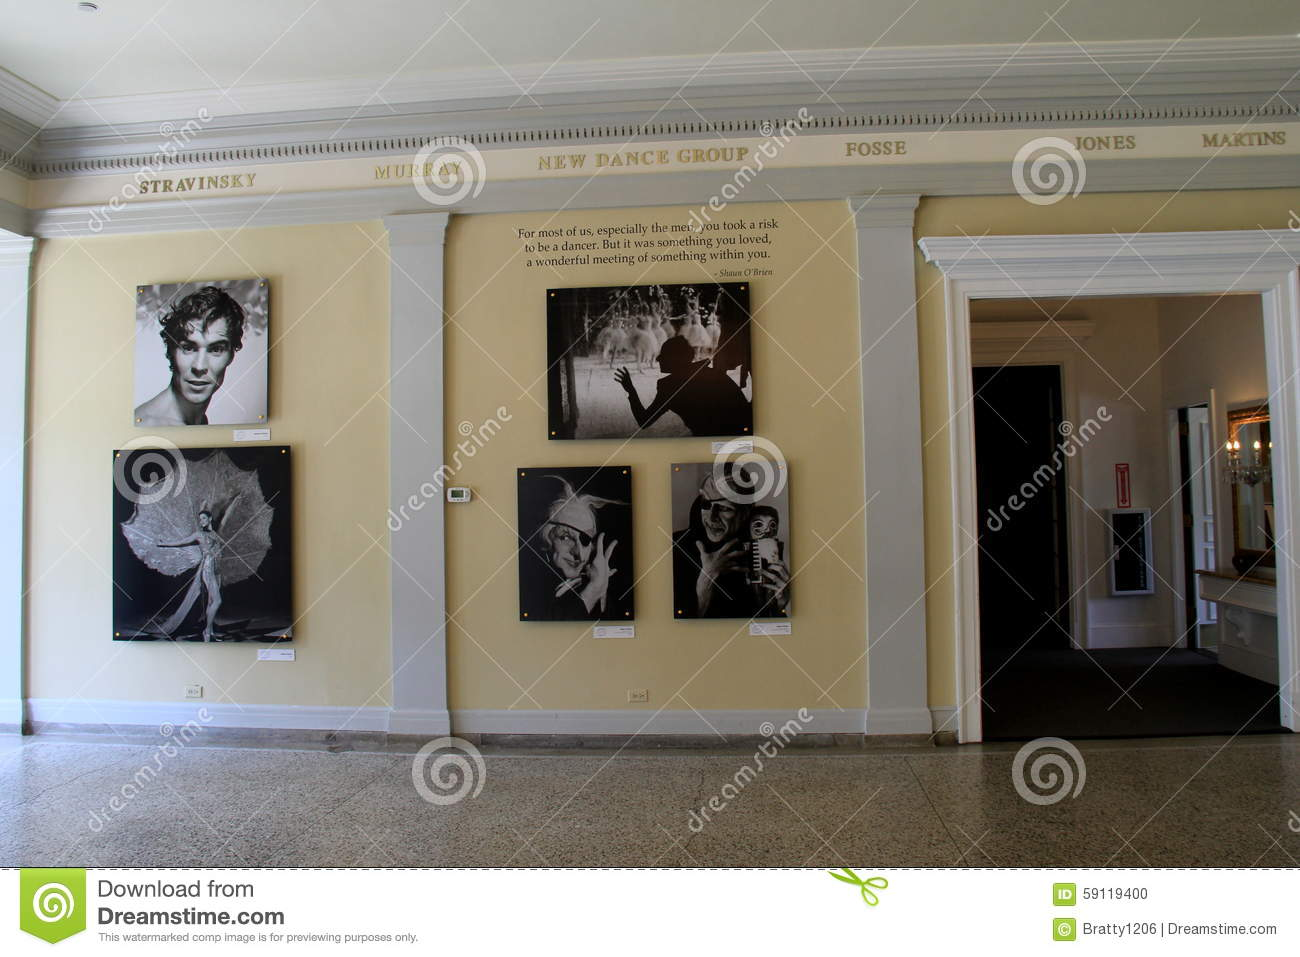 Gorgeous Images Of Famous Dancers Set Along The WallsNational - Most interesting museums in us